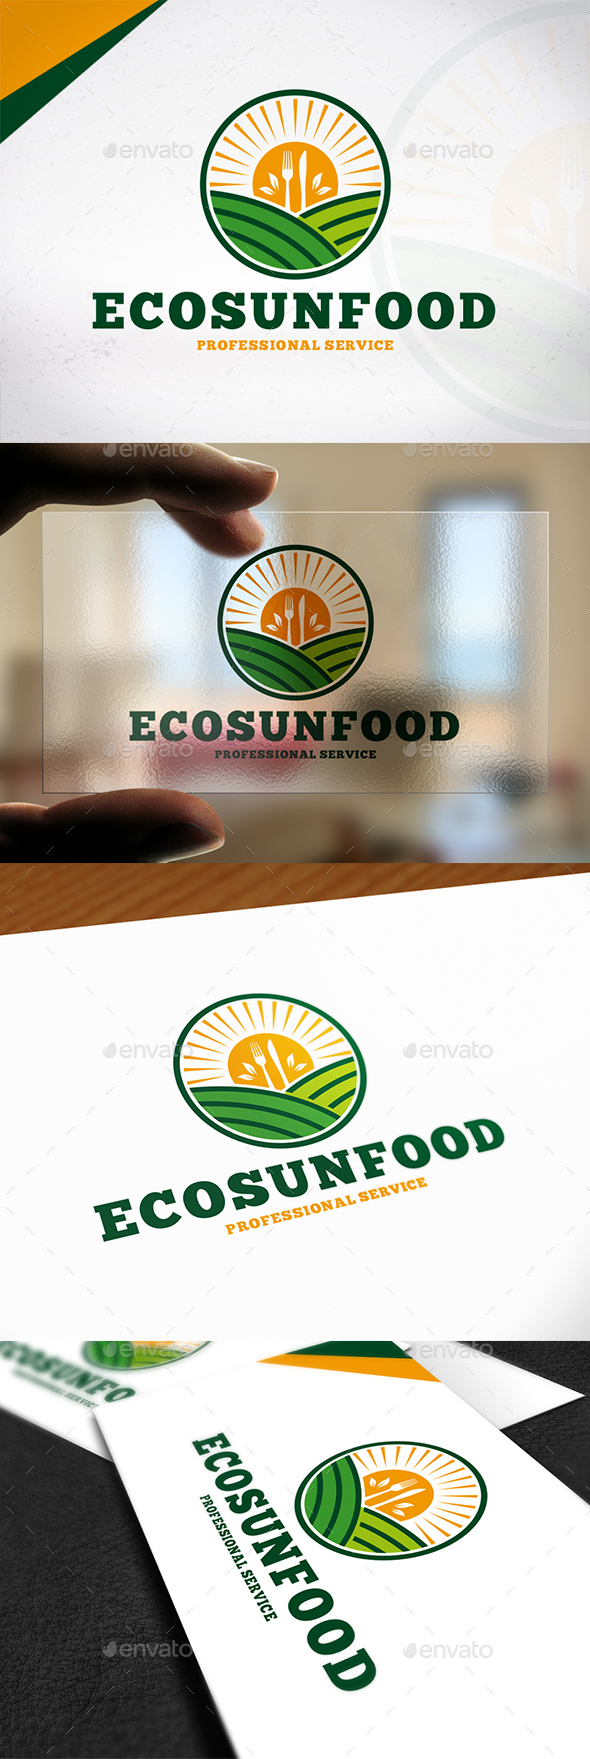 Eco Sun Food Logo - Nature Logo Templates